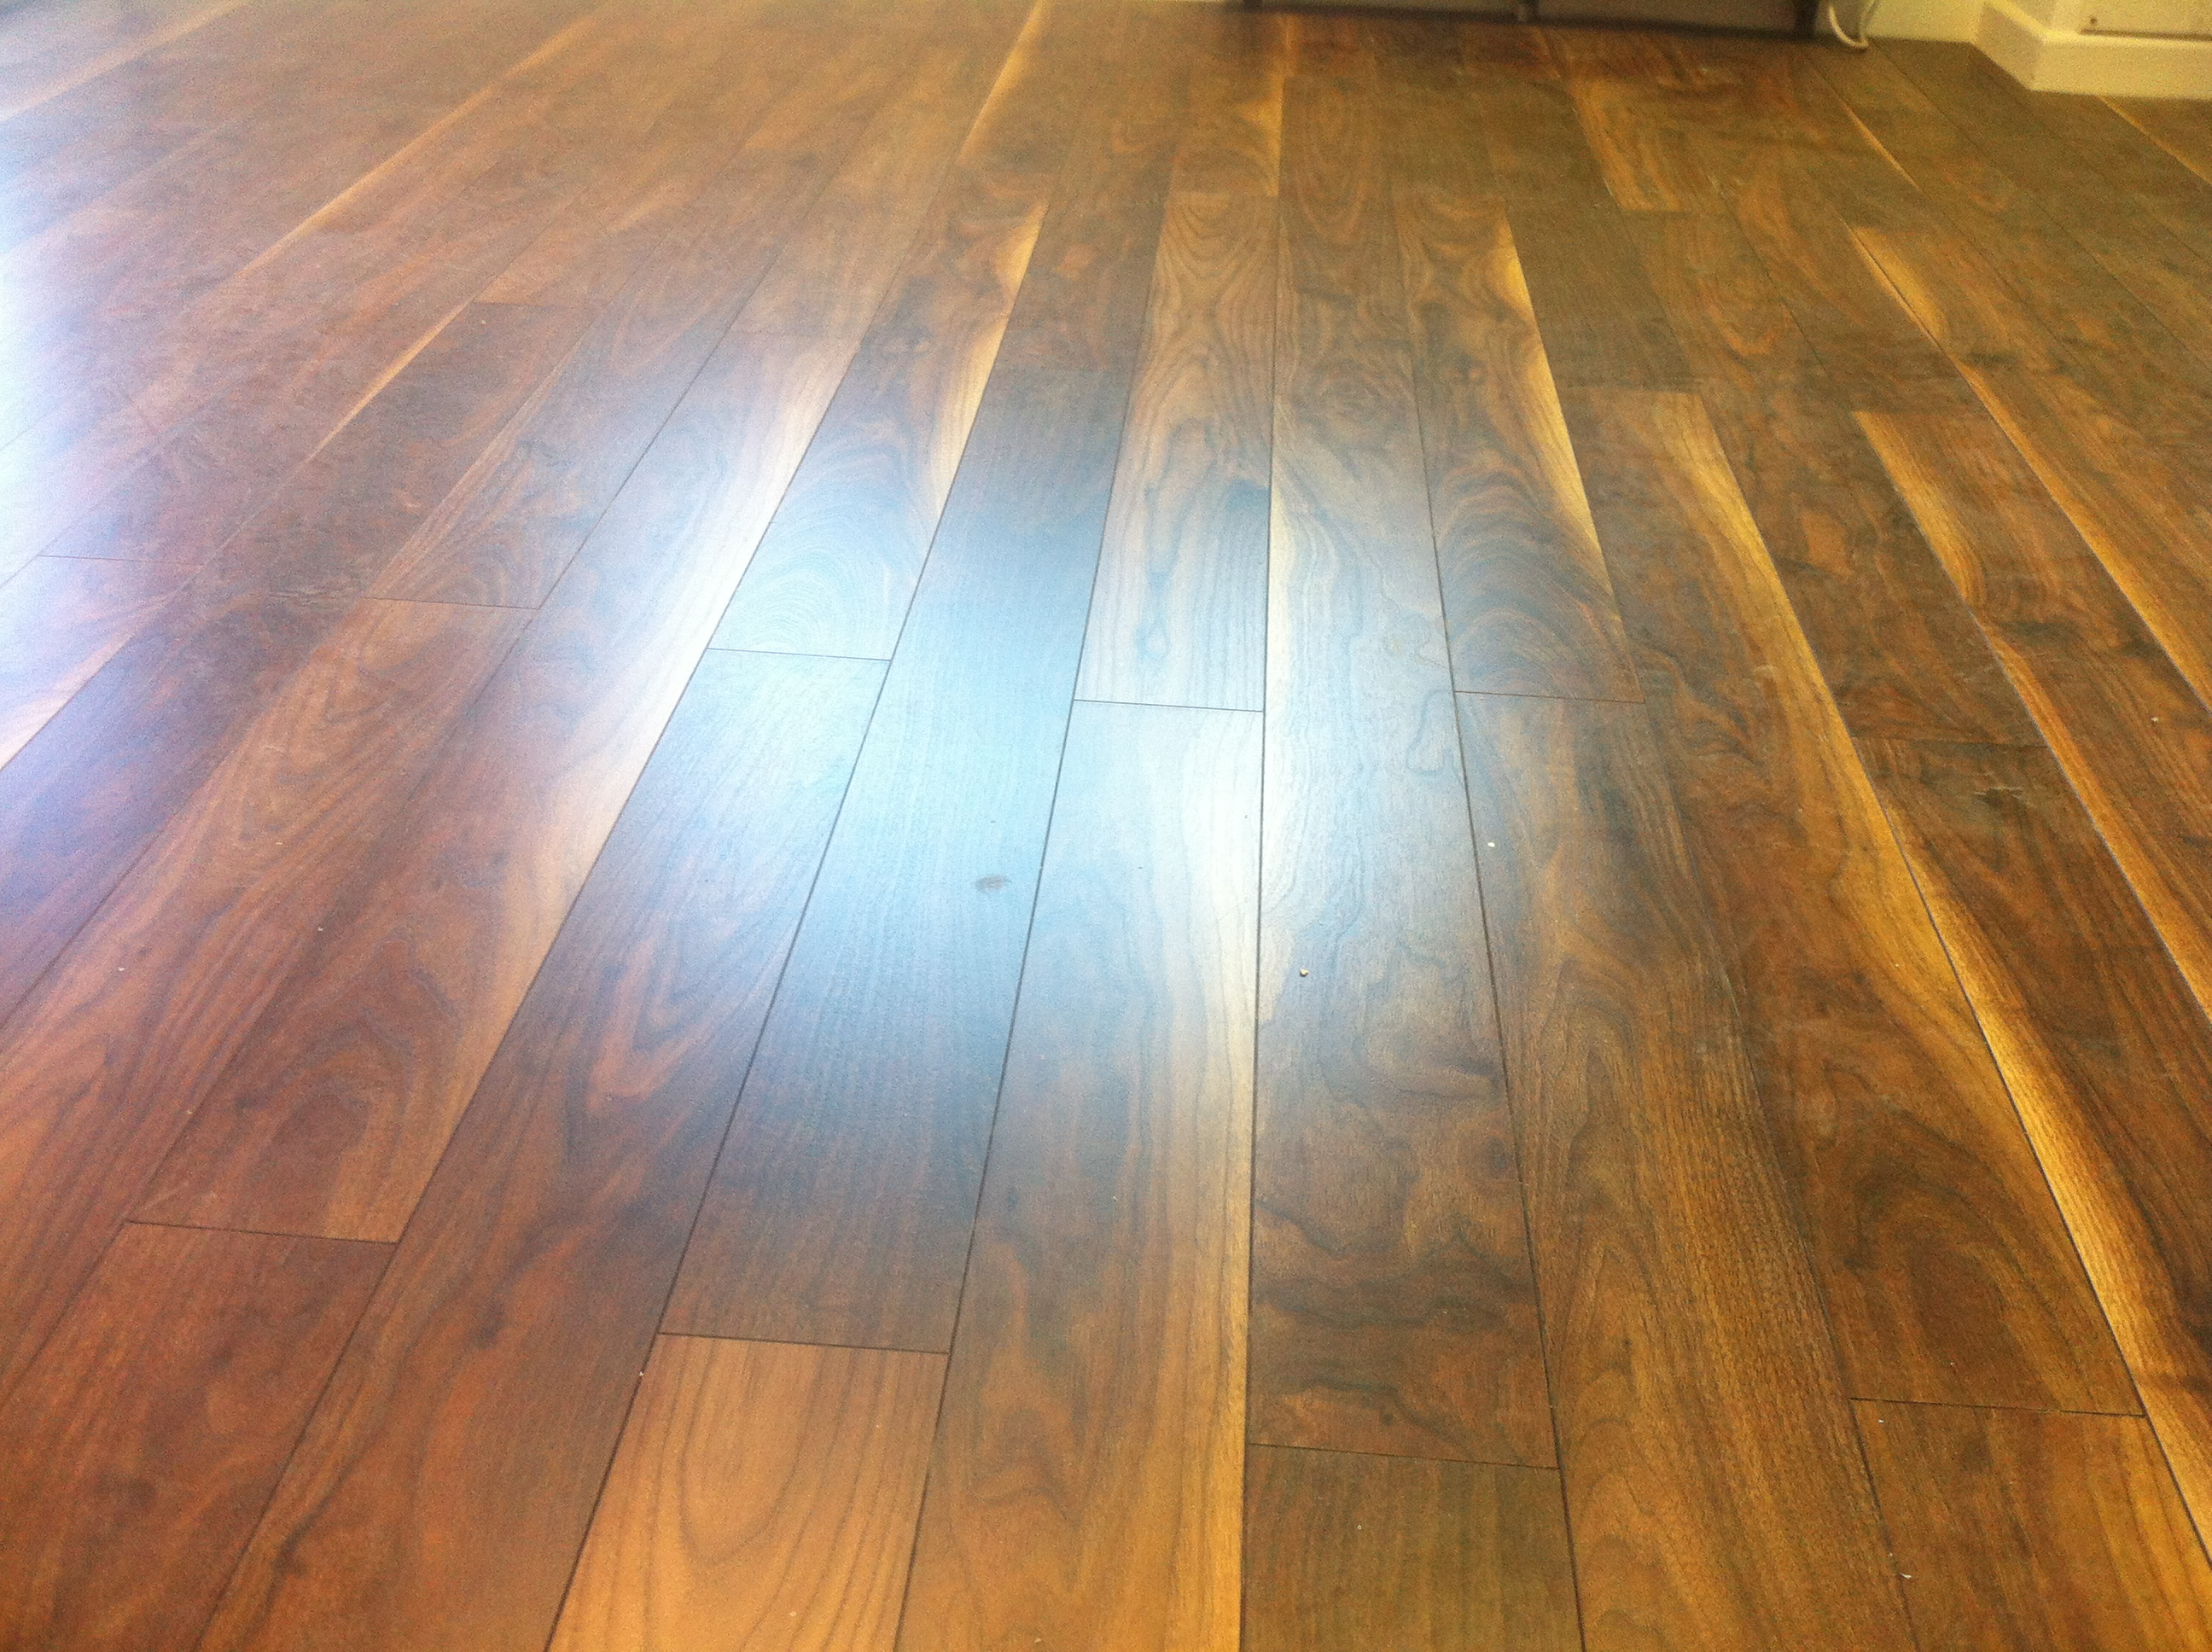 Laminate Flooring Fitting Cost >> Floor coverings | SureHome.ie Building Contractors Dublin, Kildare and Leinster